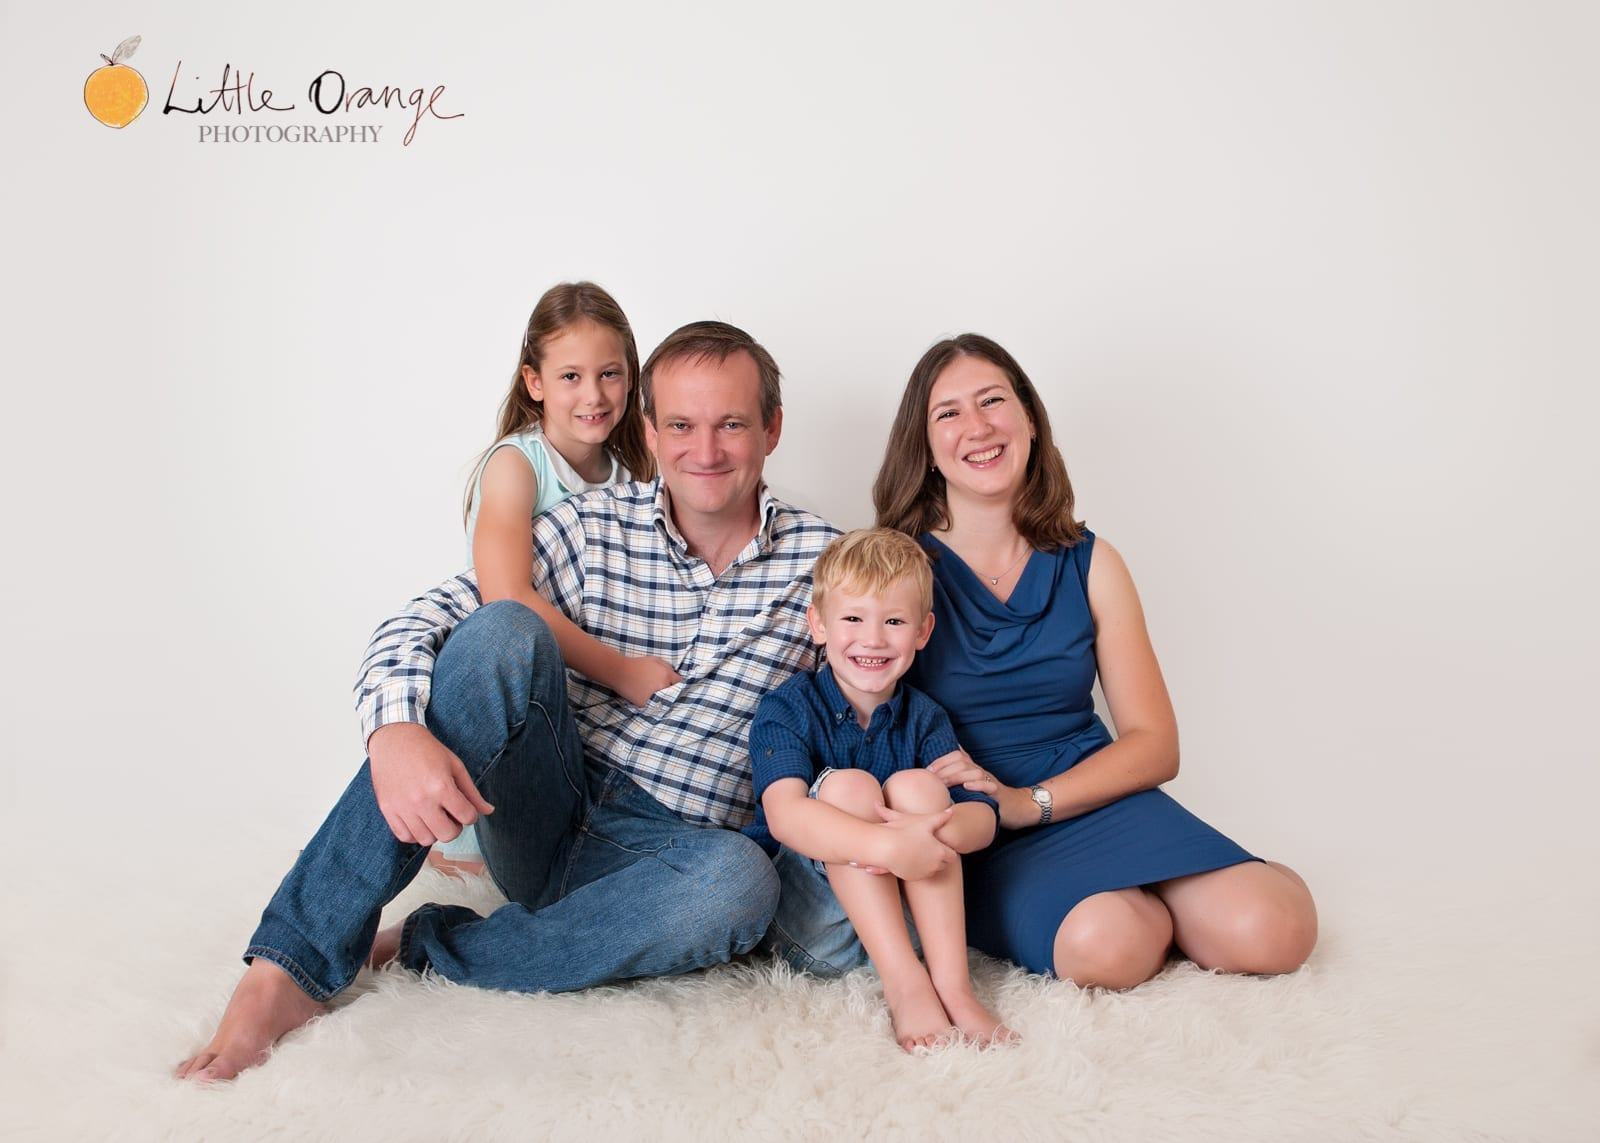 The hendersons | Family Photography